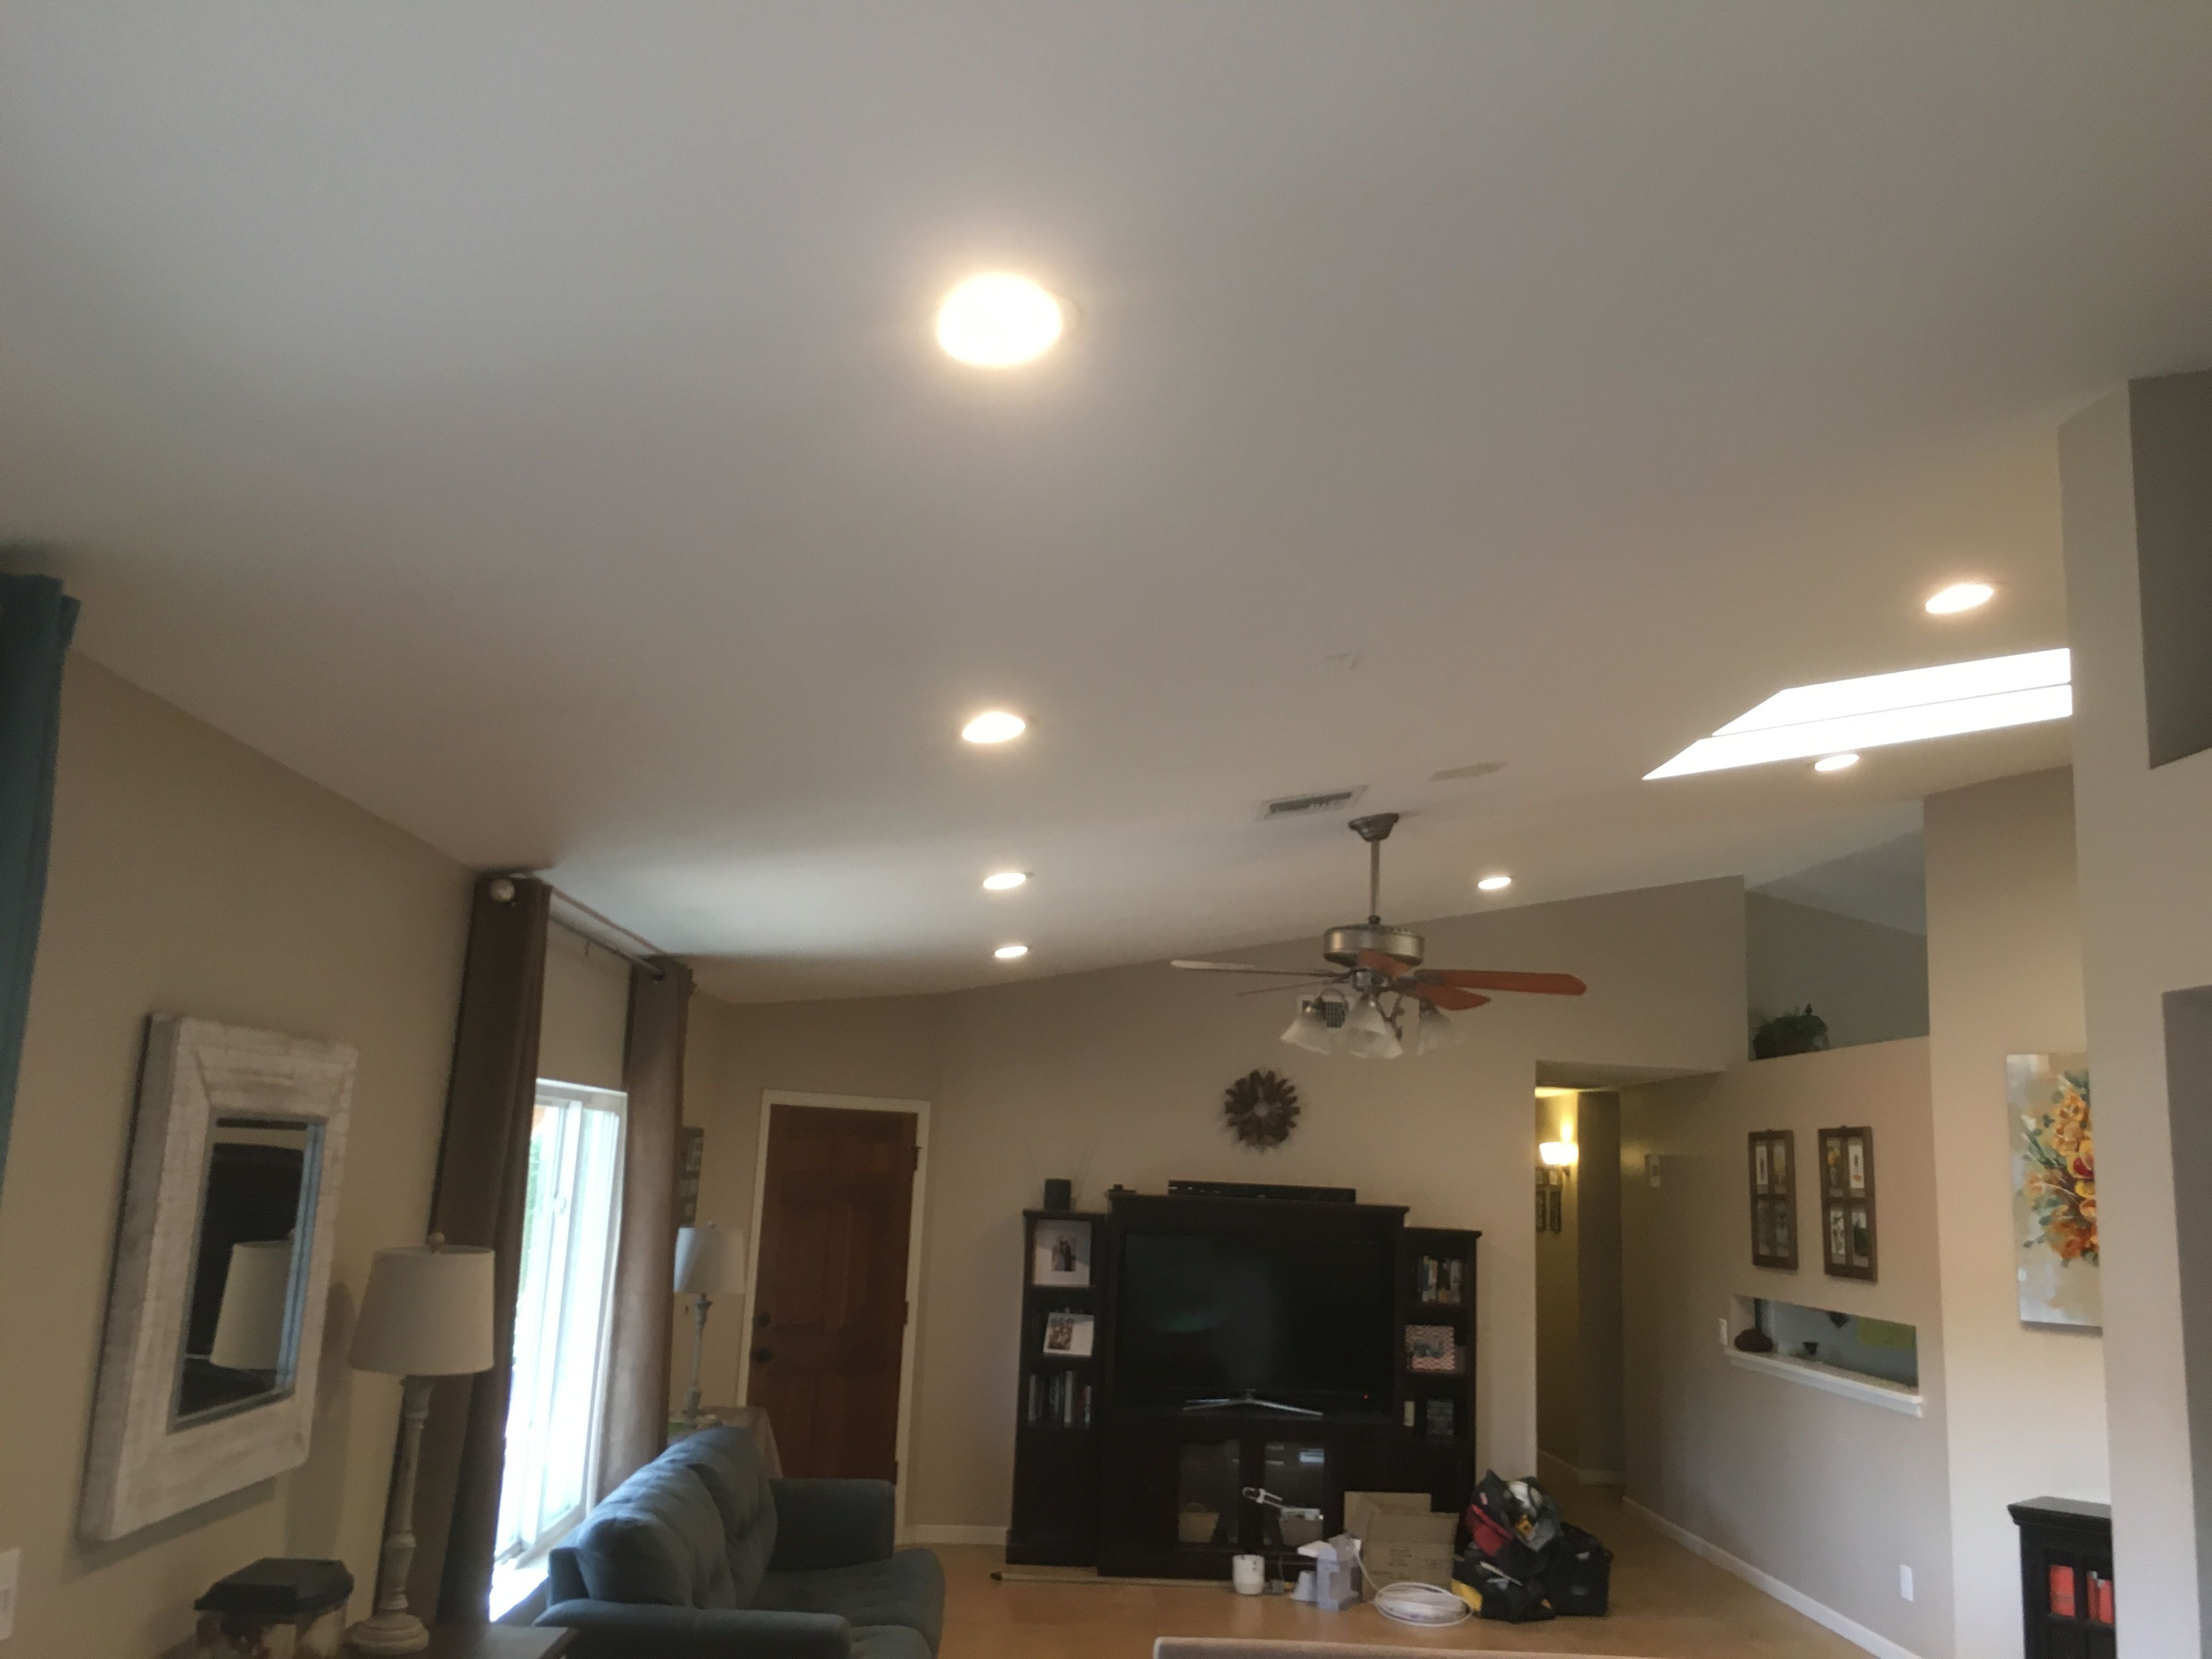 Installed 10 6 Inch Recessed Lighting And A Dimmer